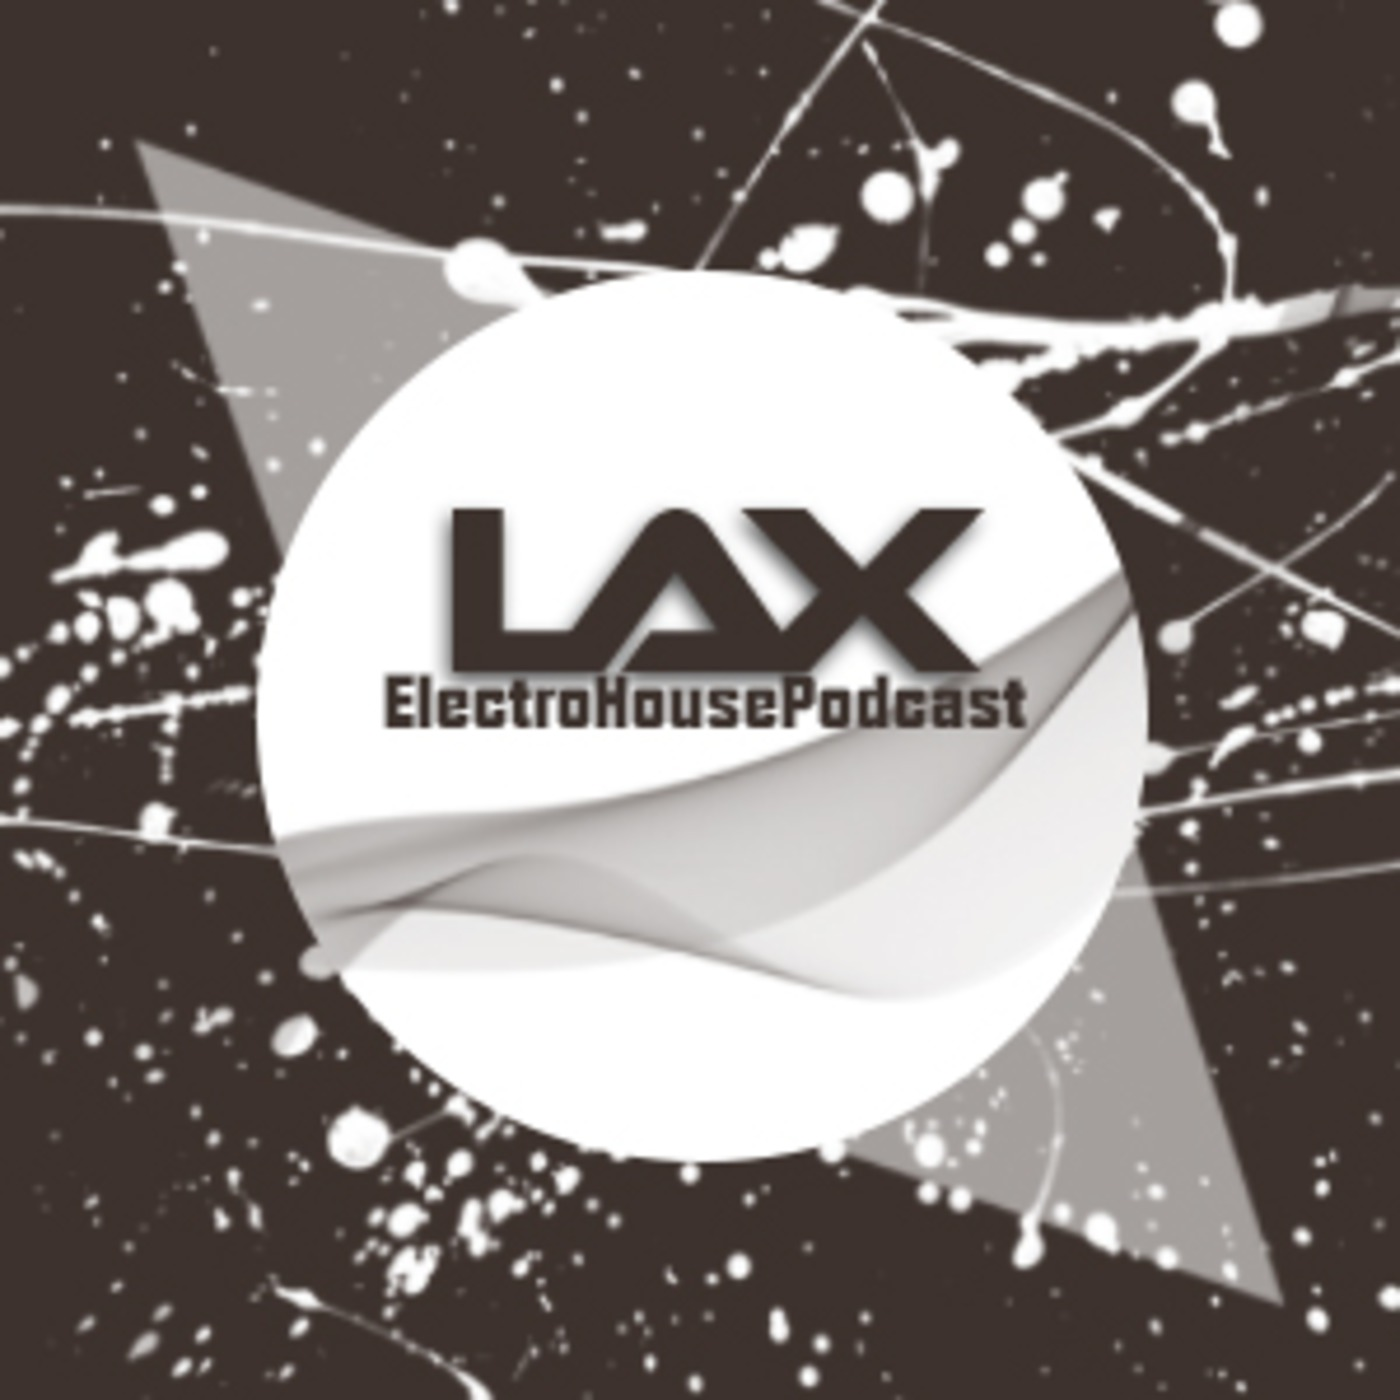 LAX's ElectroHousePodcast